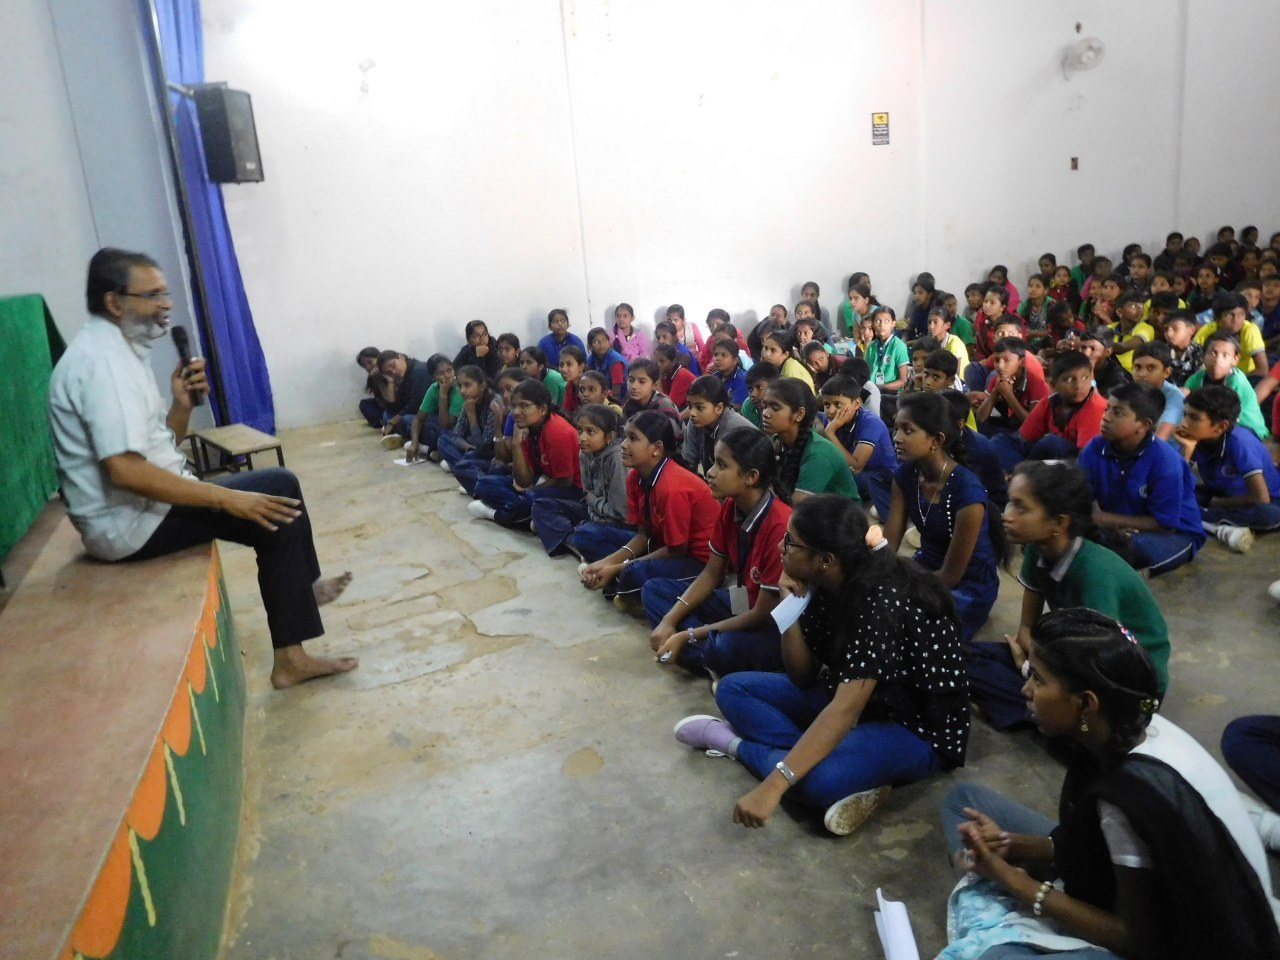 The inspirational event was conducted for the benefit of students to help them face challenges in life.